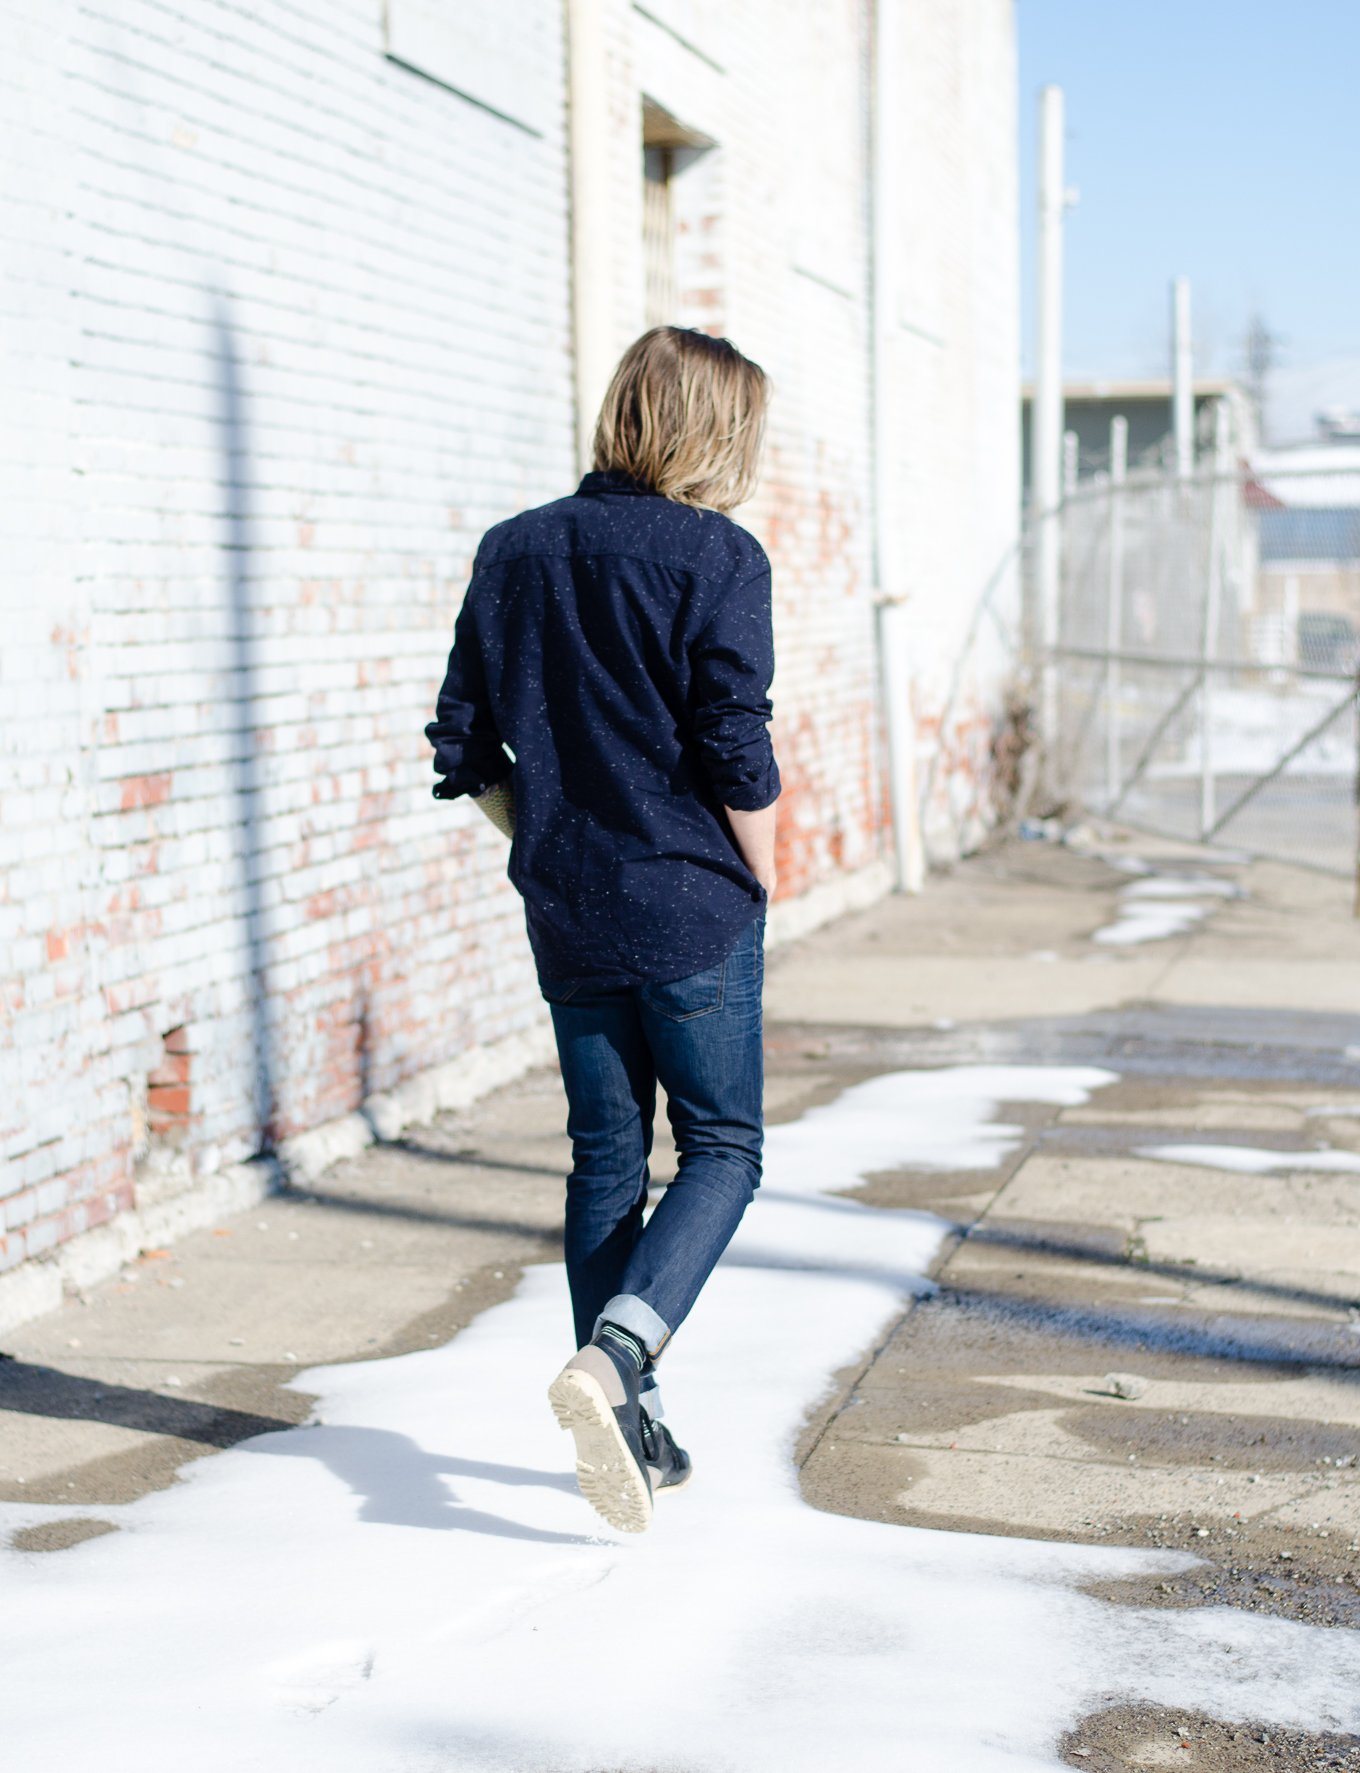 The Kentucky Gent, a men's fashion and lifestyle blogger, takes it easy in his latest post.